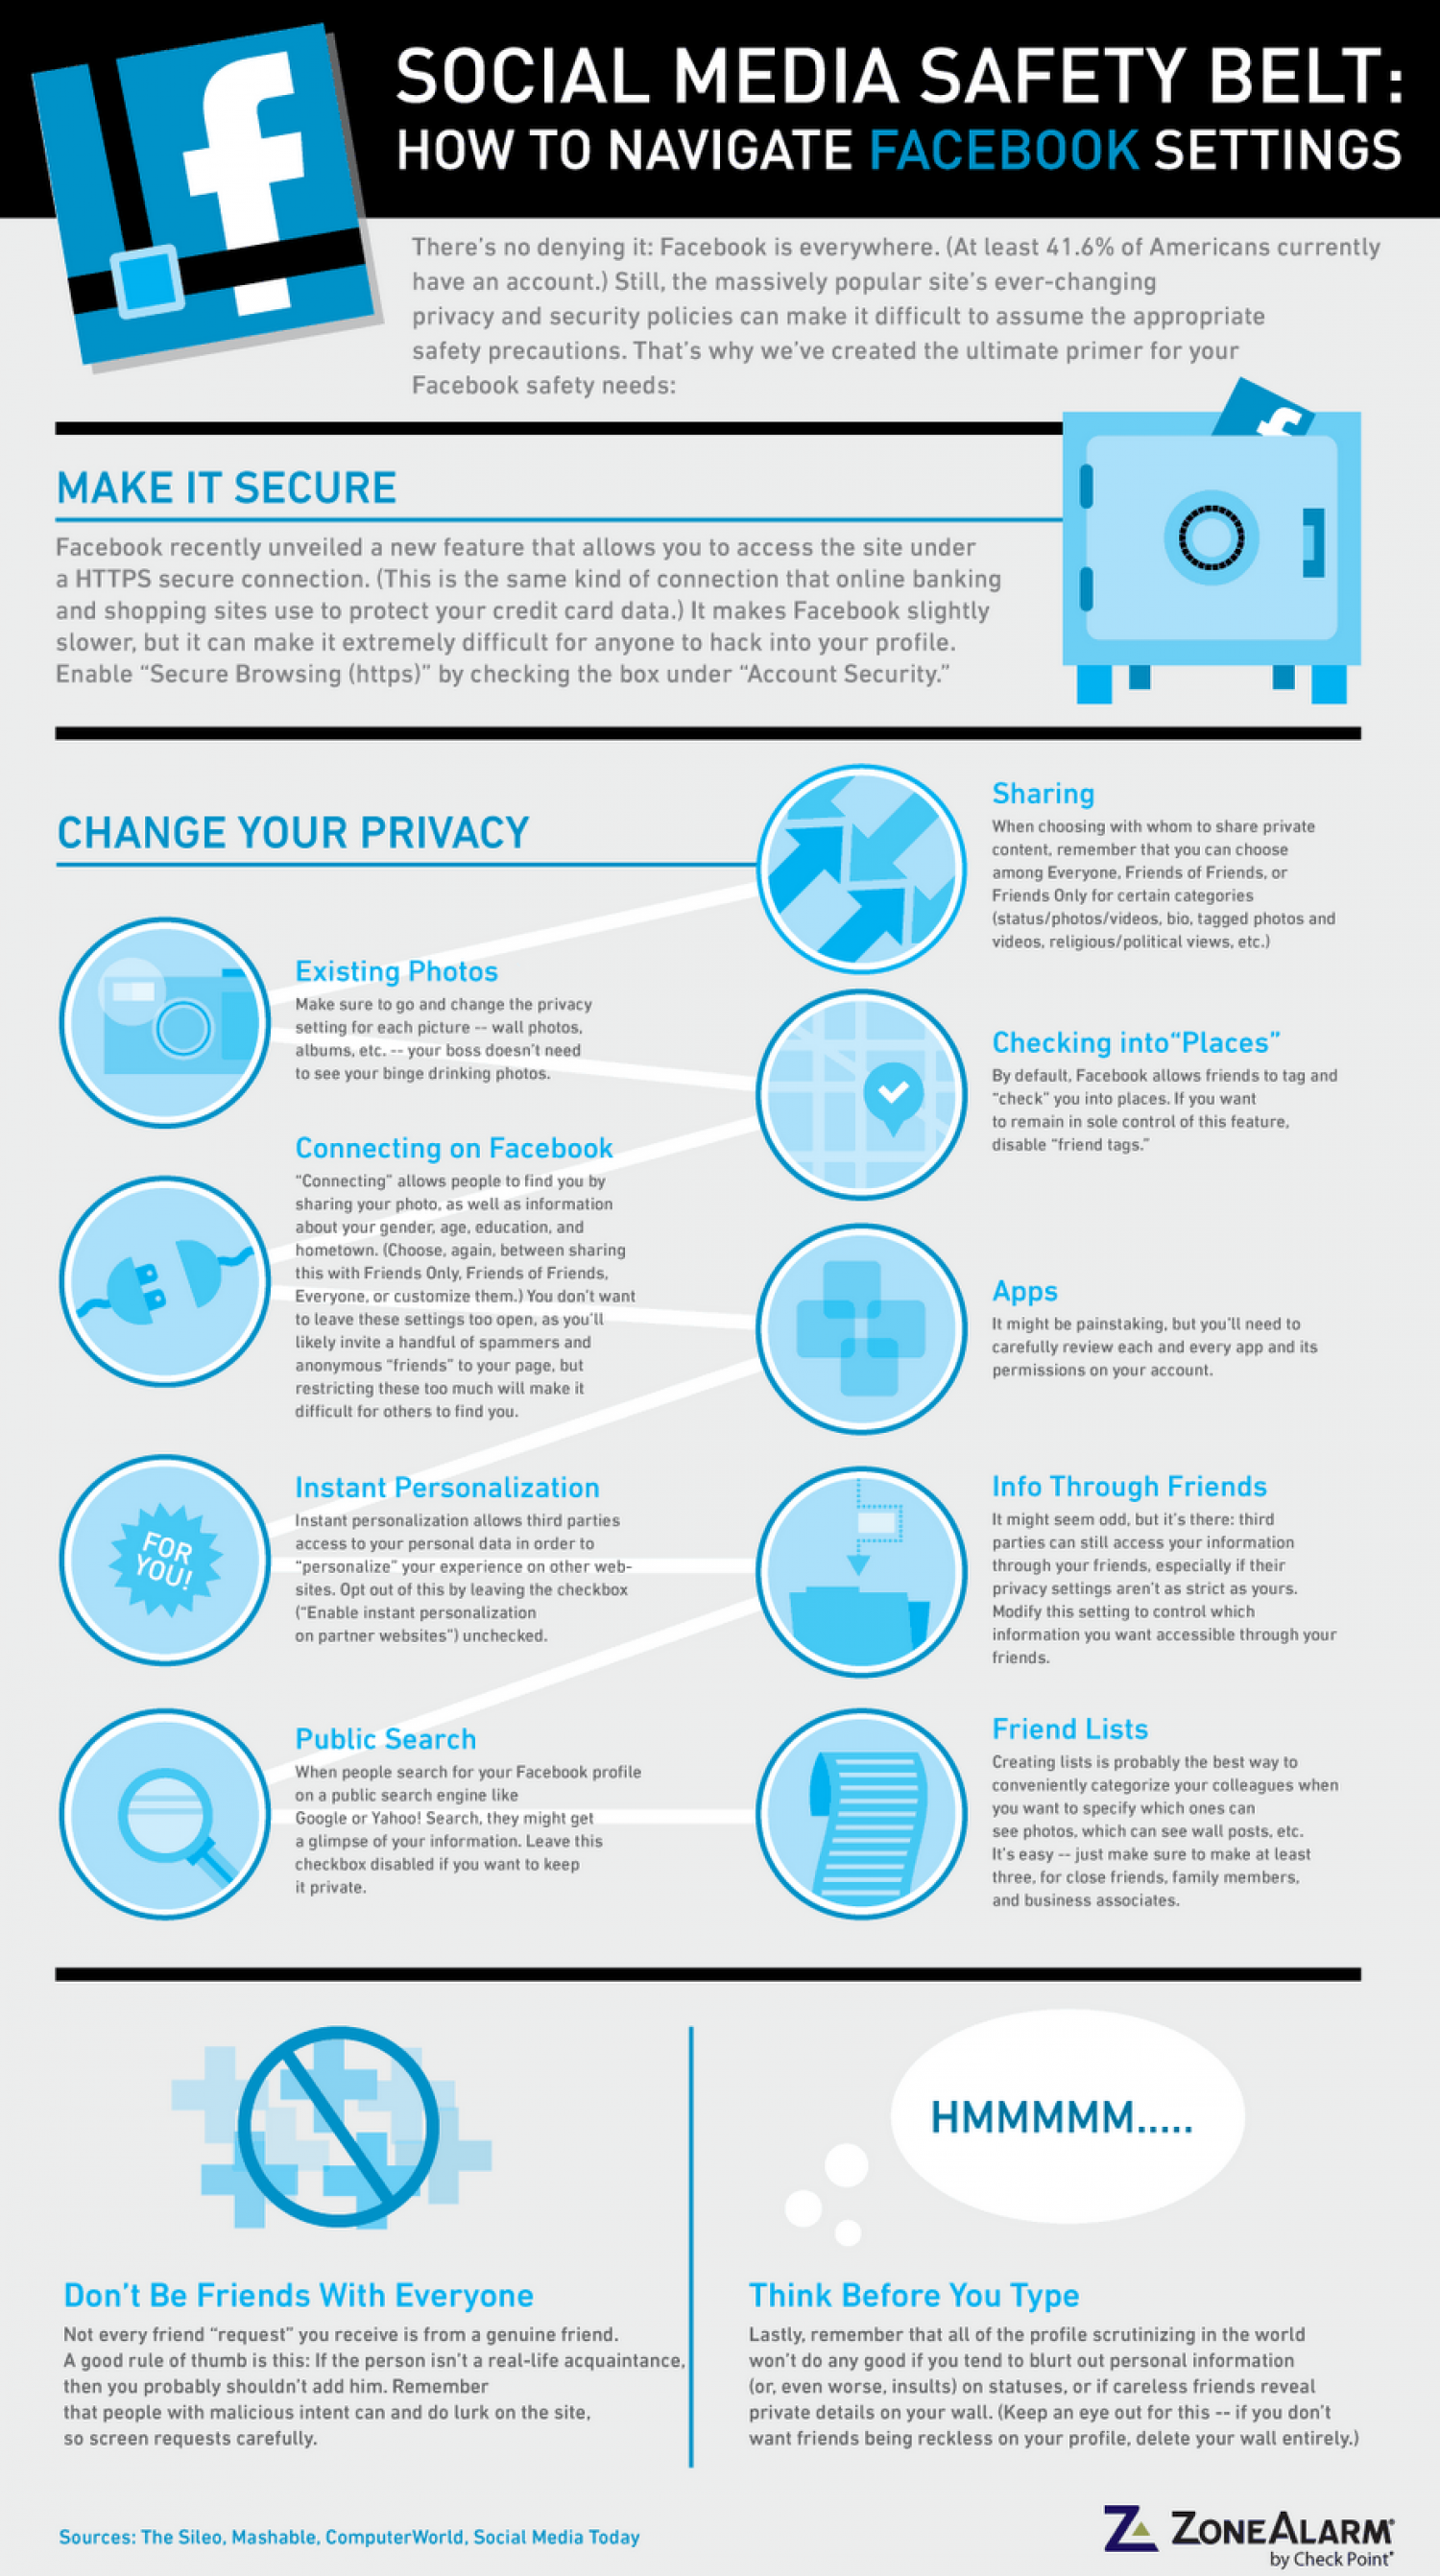 Social Media Safety Belt: How to Navigate Facebook Settings Infographic